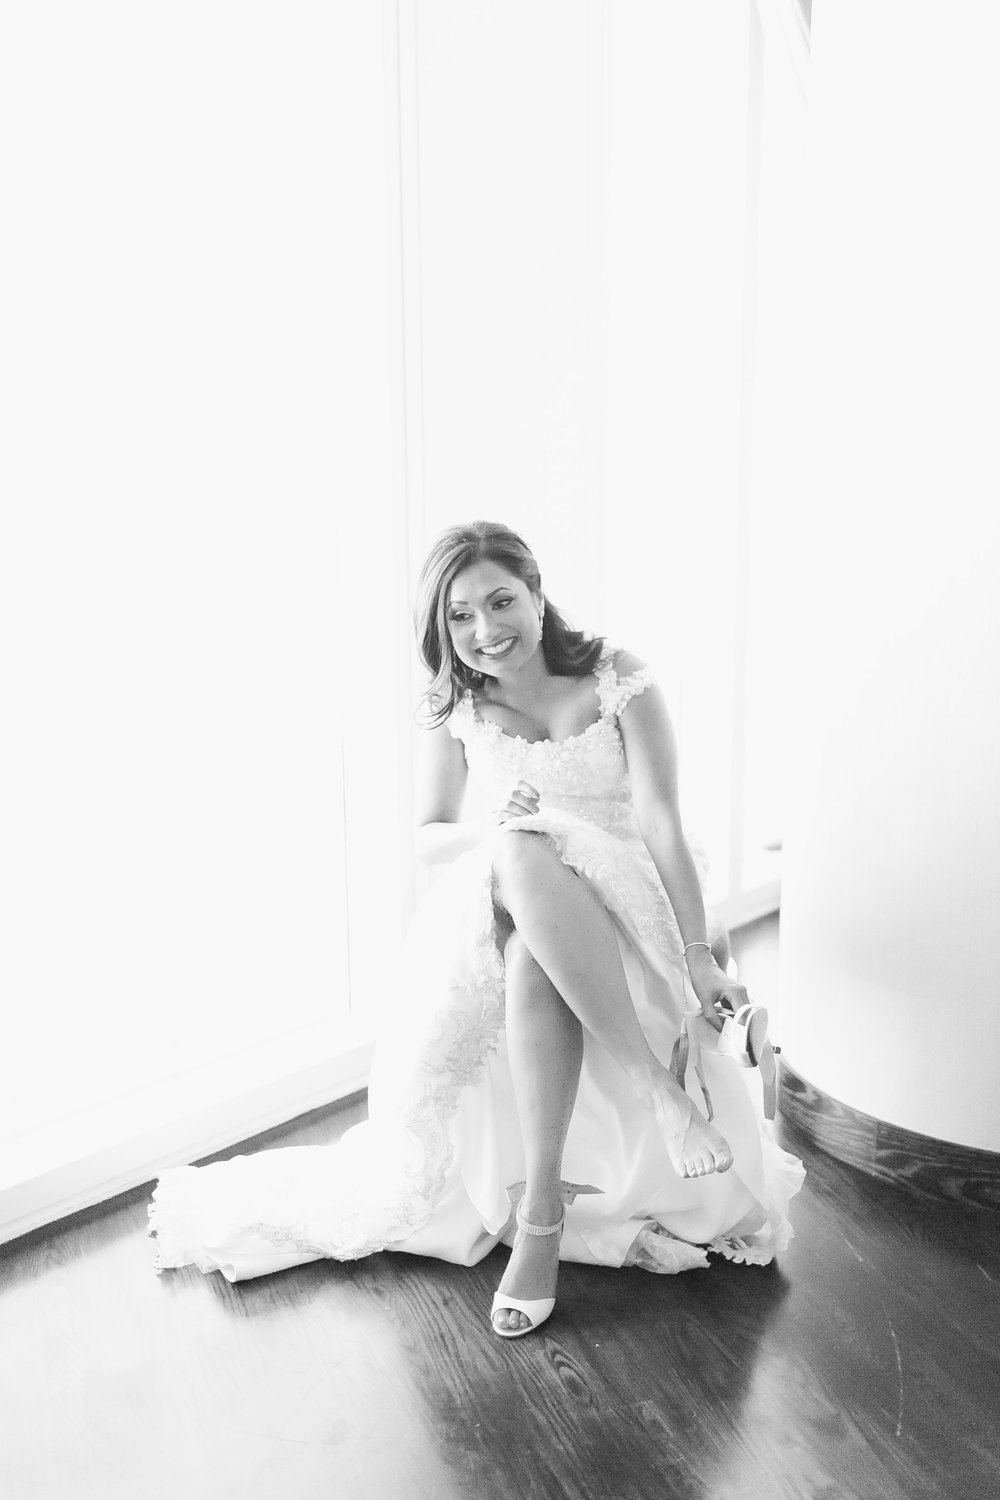 Black and white image of bride putting on her wedding shoes  Las Vegas Wedding Planner Andrea Eppolito shares this multicultural wedding.  Photo by J.Anne Photography.